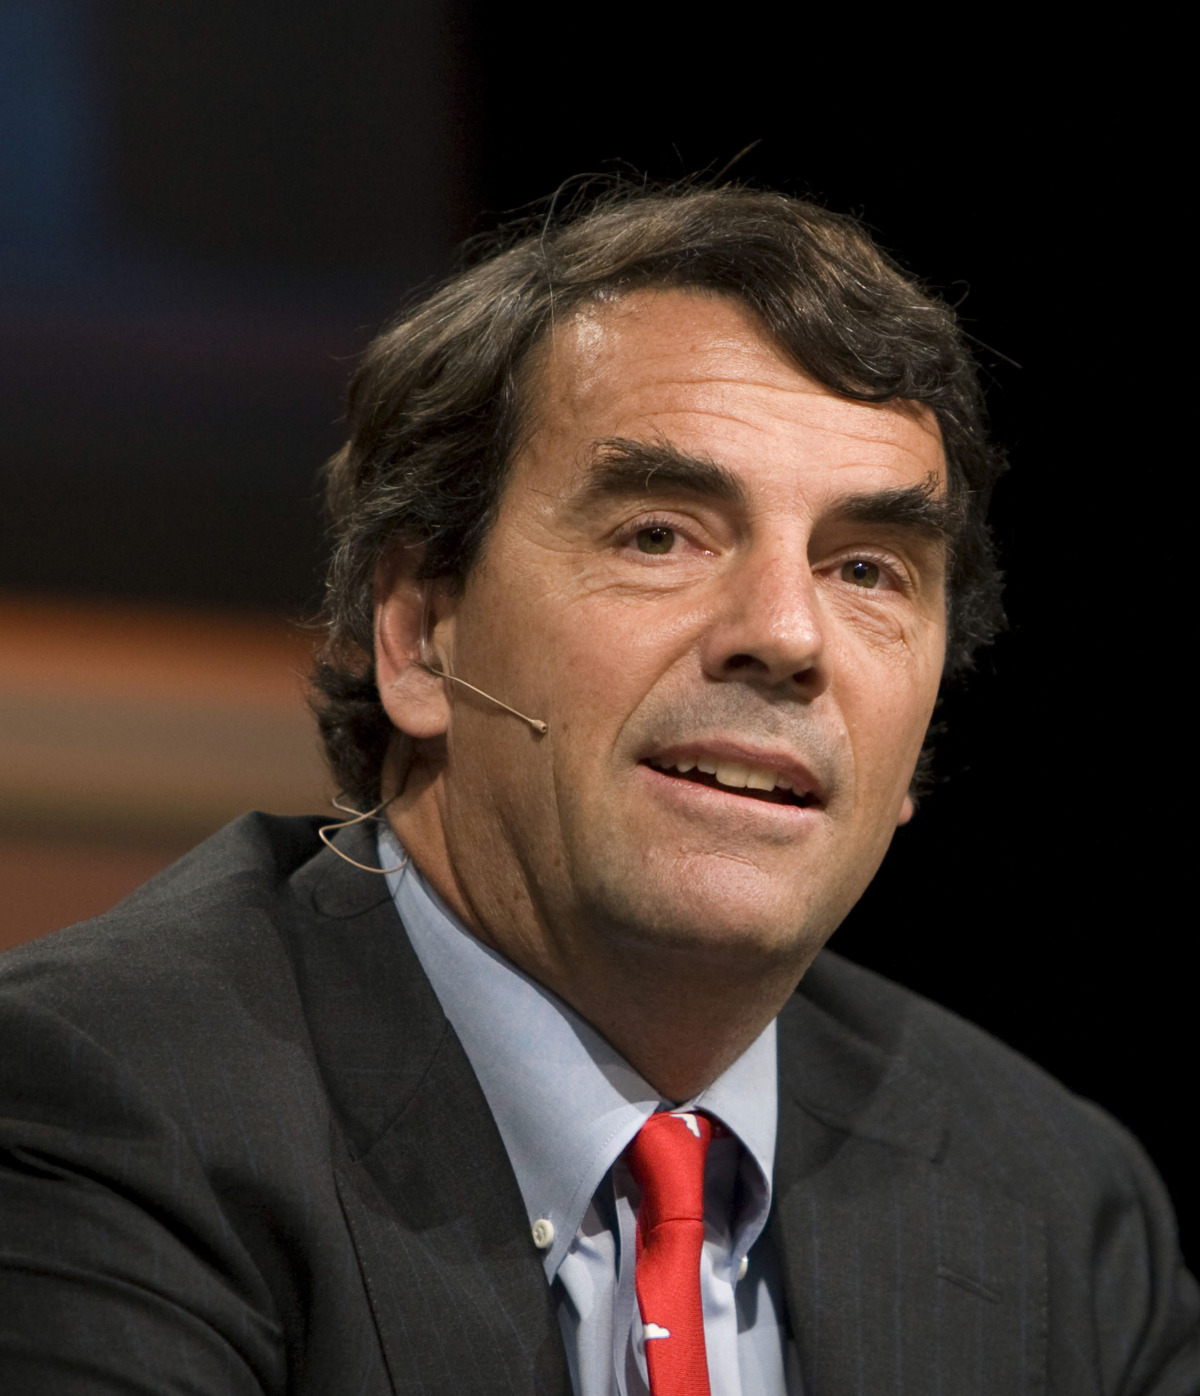 Tim Draper, managing partner for Draper Fisher Jurvetson, speaks during a panel.